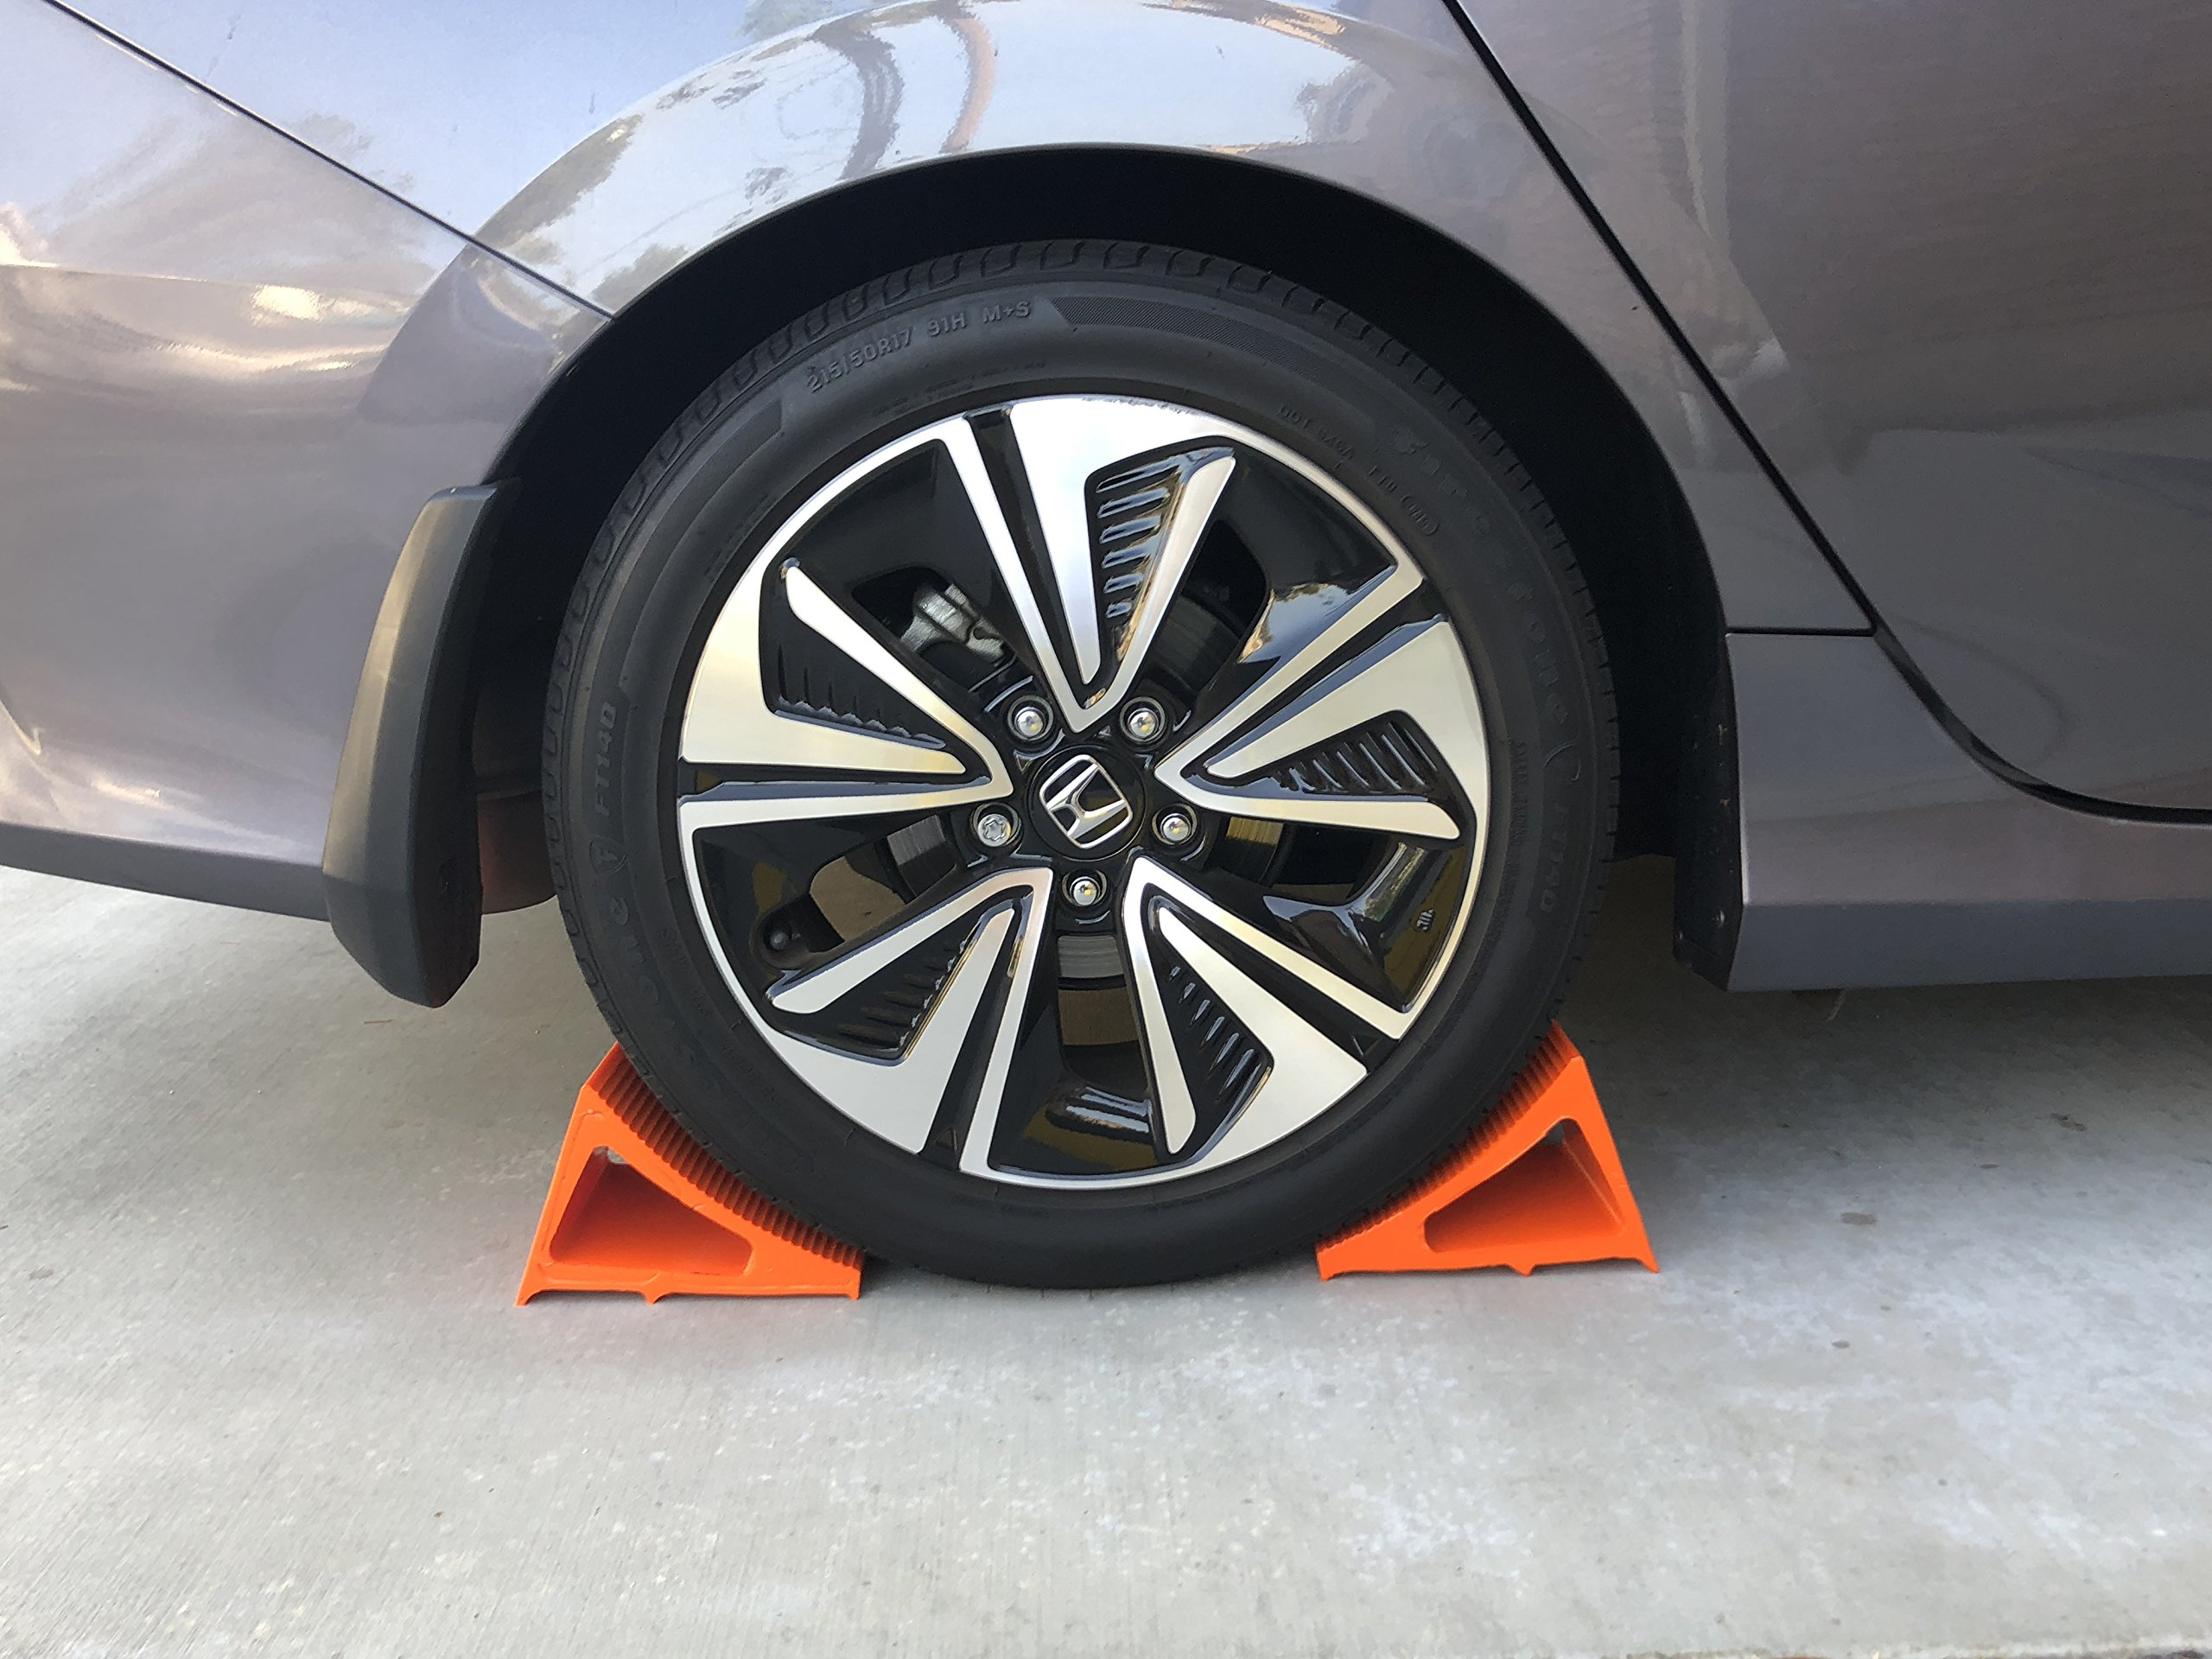 Elasco Wheel Chock, Weatherproof, Outdoor Grade, Polyurethane better than Rubber or Plastic, Keeps Your Trailer or RV In Place, 5 Year Warranty (2 Pack, Orange) by Elasco Products (Image #7)